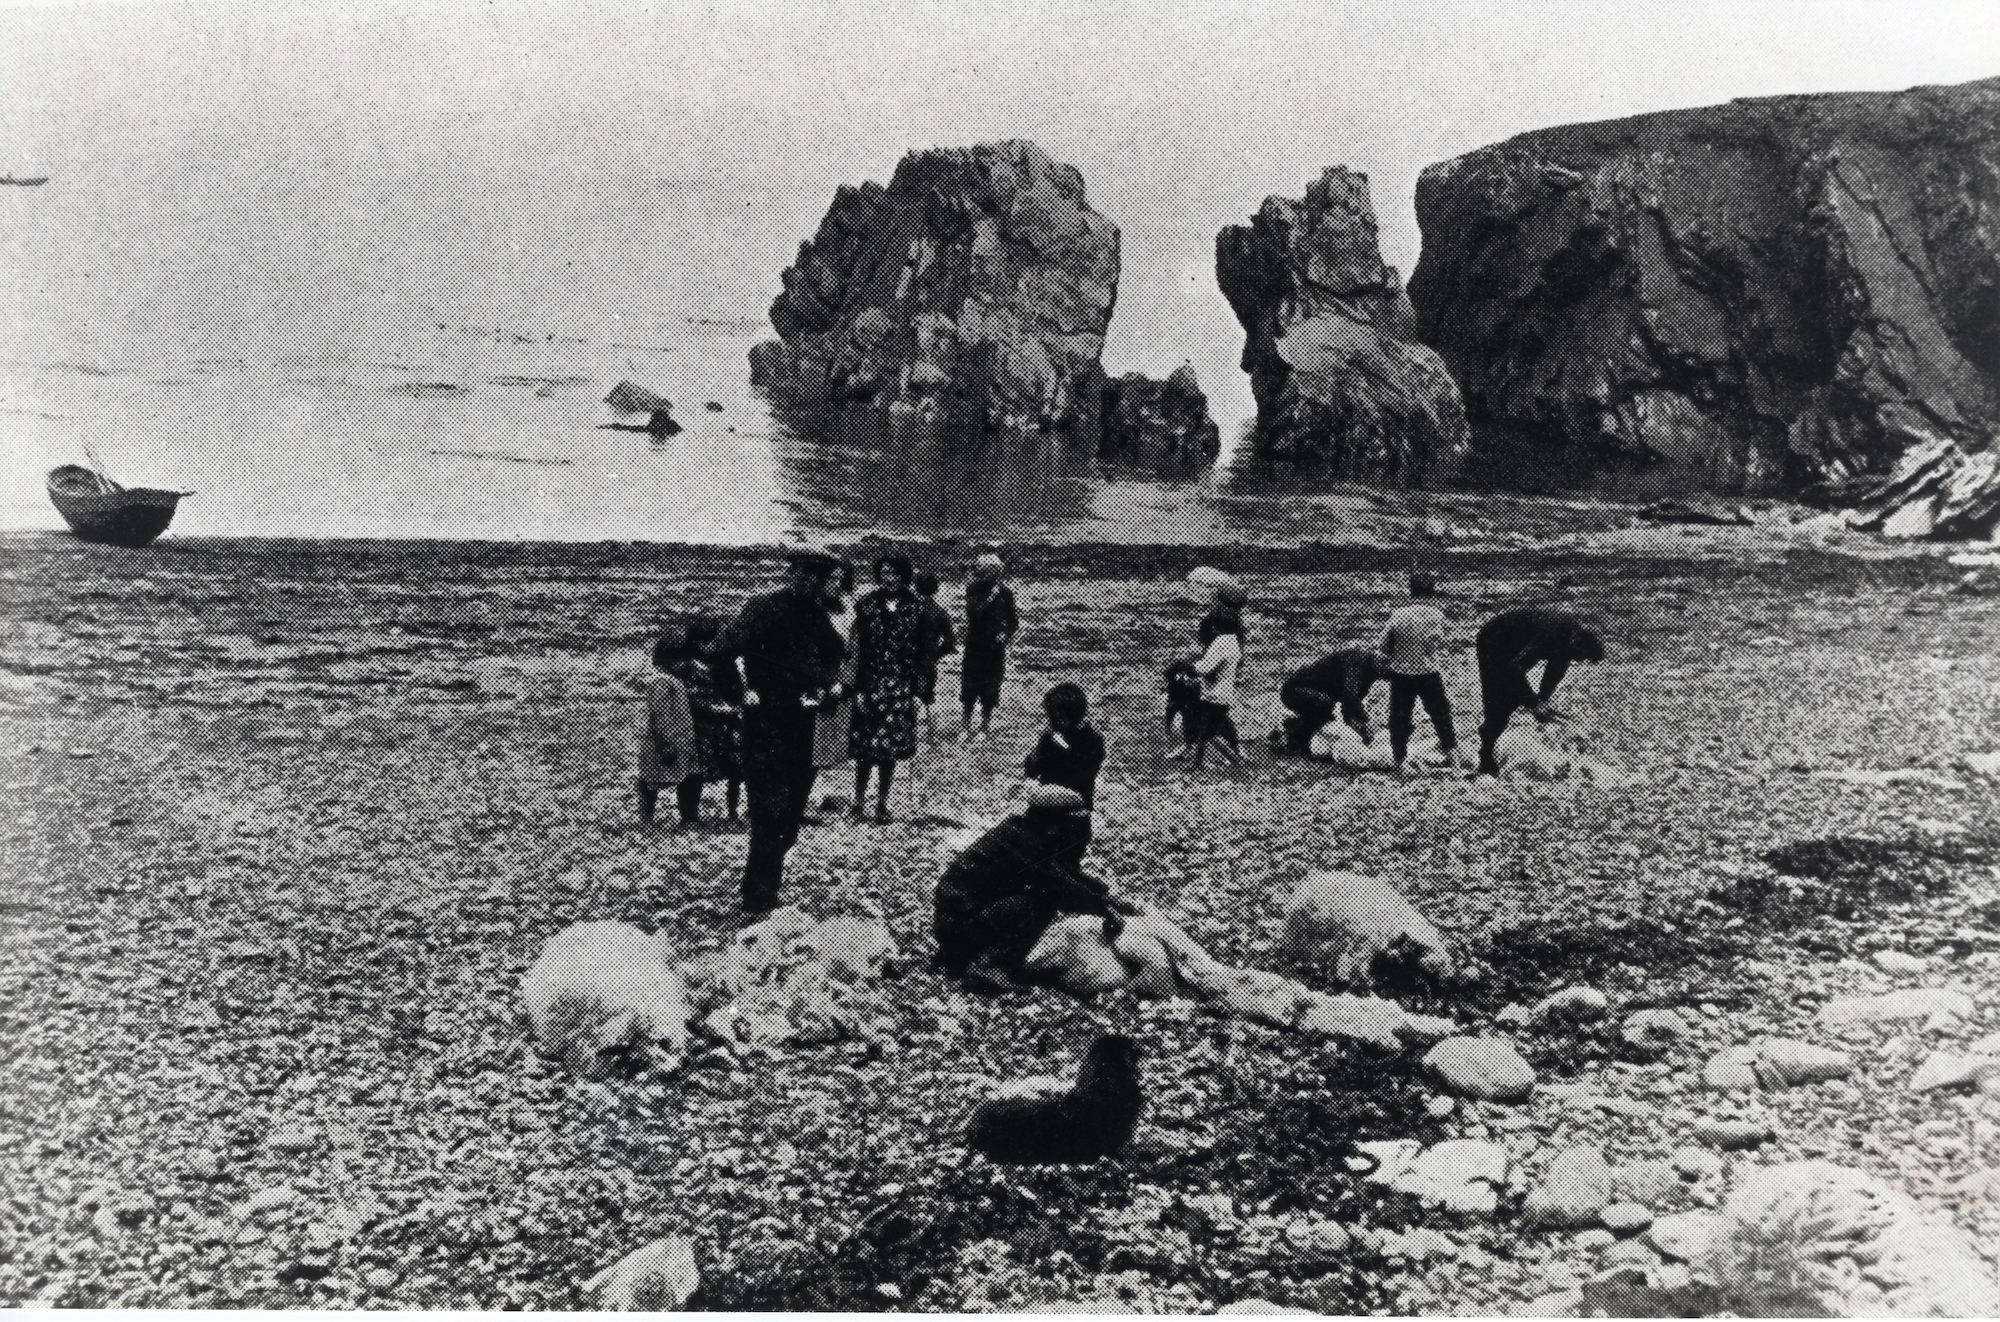 Shearing sheep in a natural pen formed by one of the coves on Blasket.